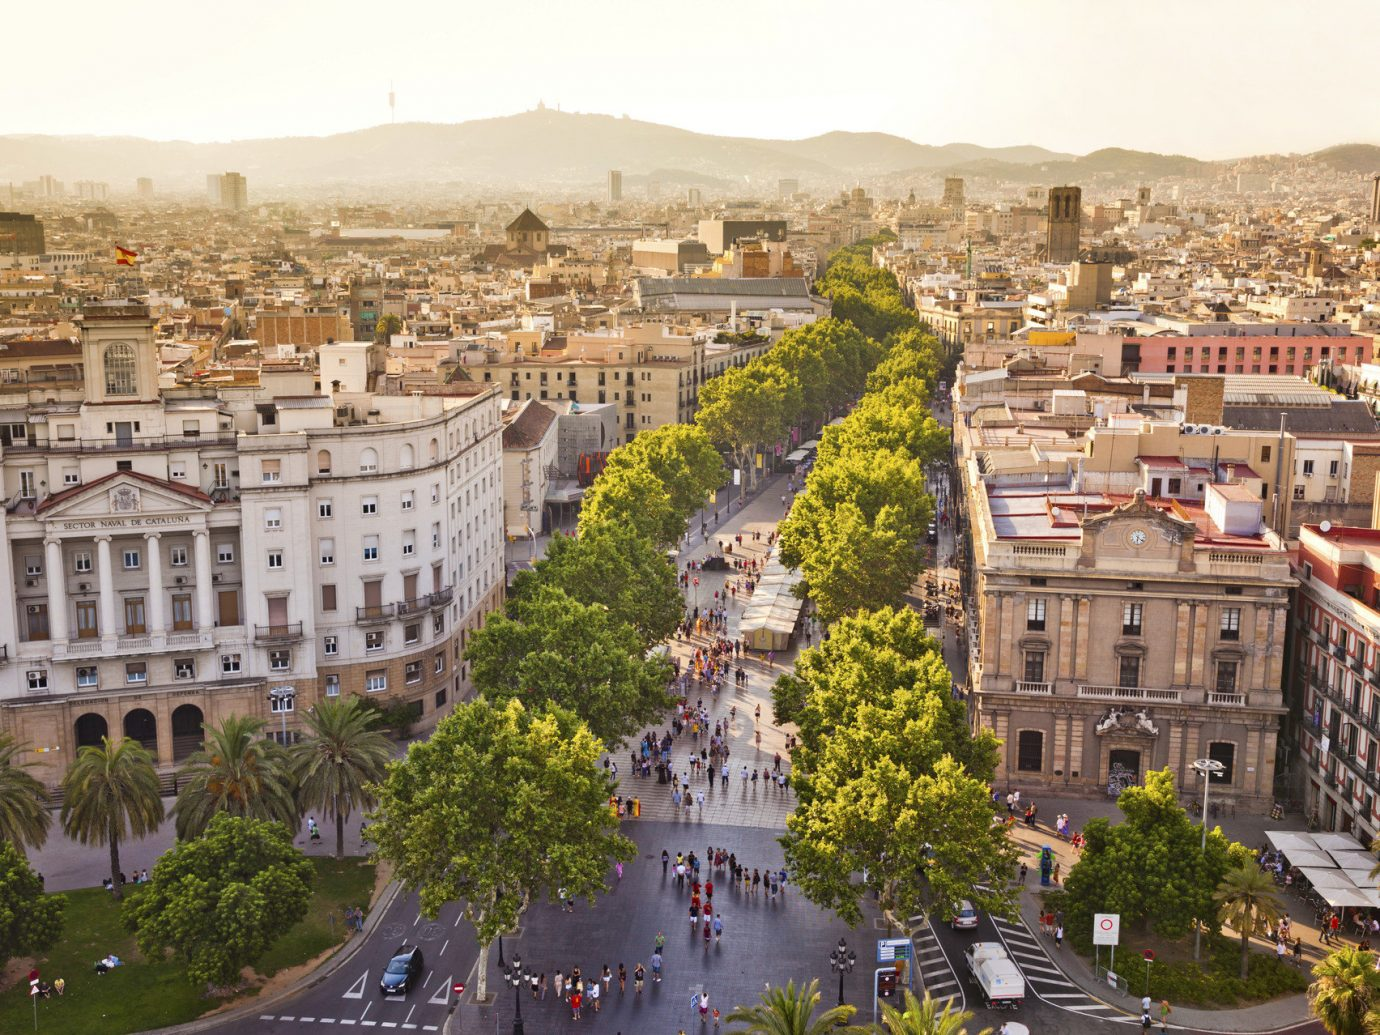 Hotels Romance Trip Ideas sky outdoor Town geographical feature landmark cityscape City neighbourhood human settlement urban area plaza town square aerial photography residential area metropolis Downtown ancient rome palace ancient history panorama crowd